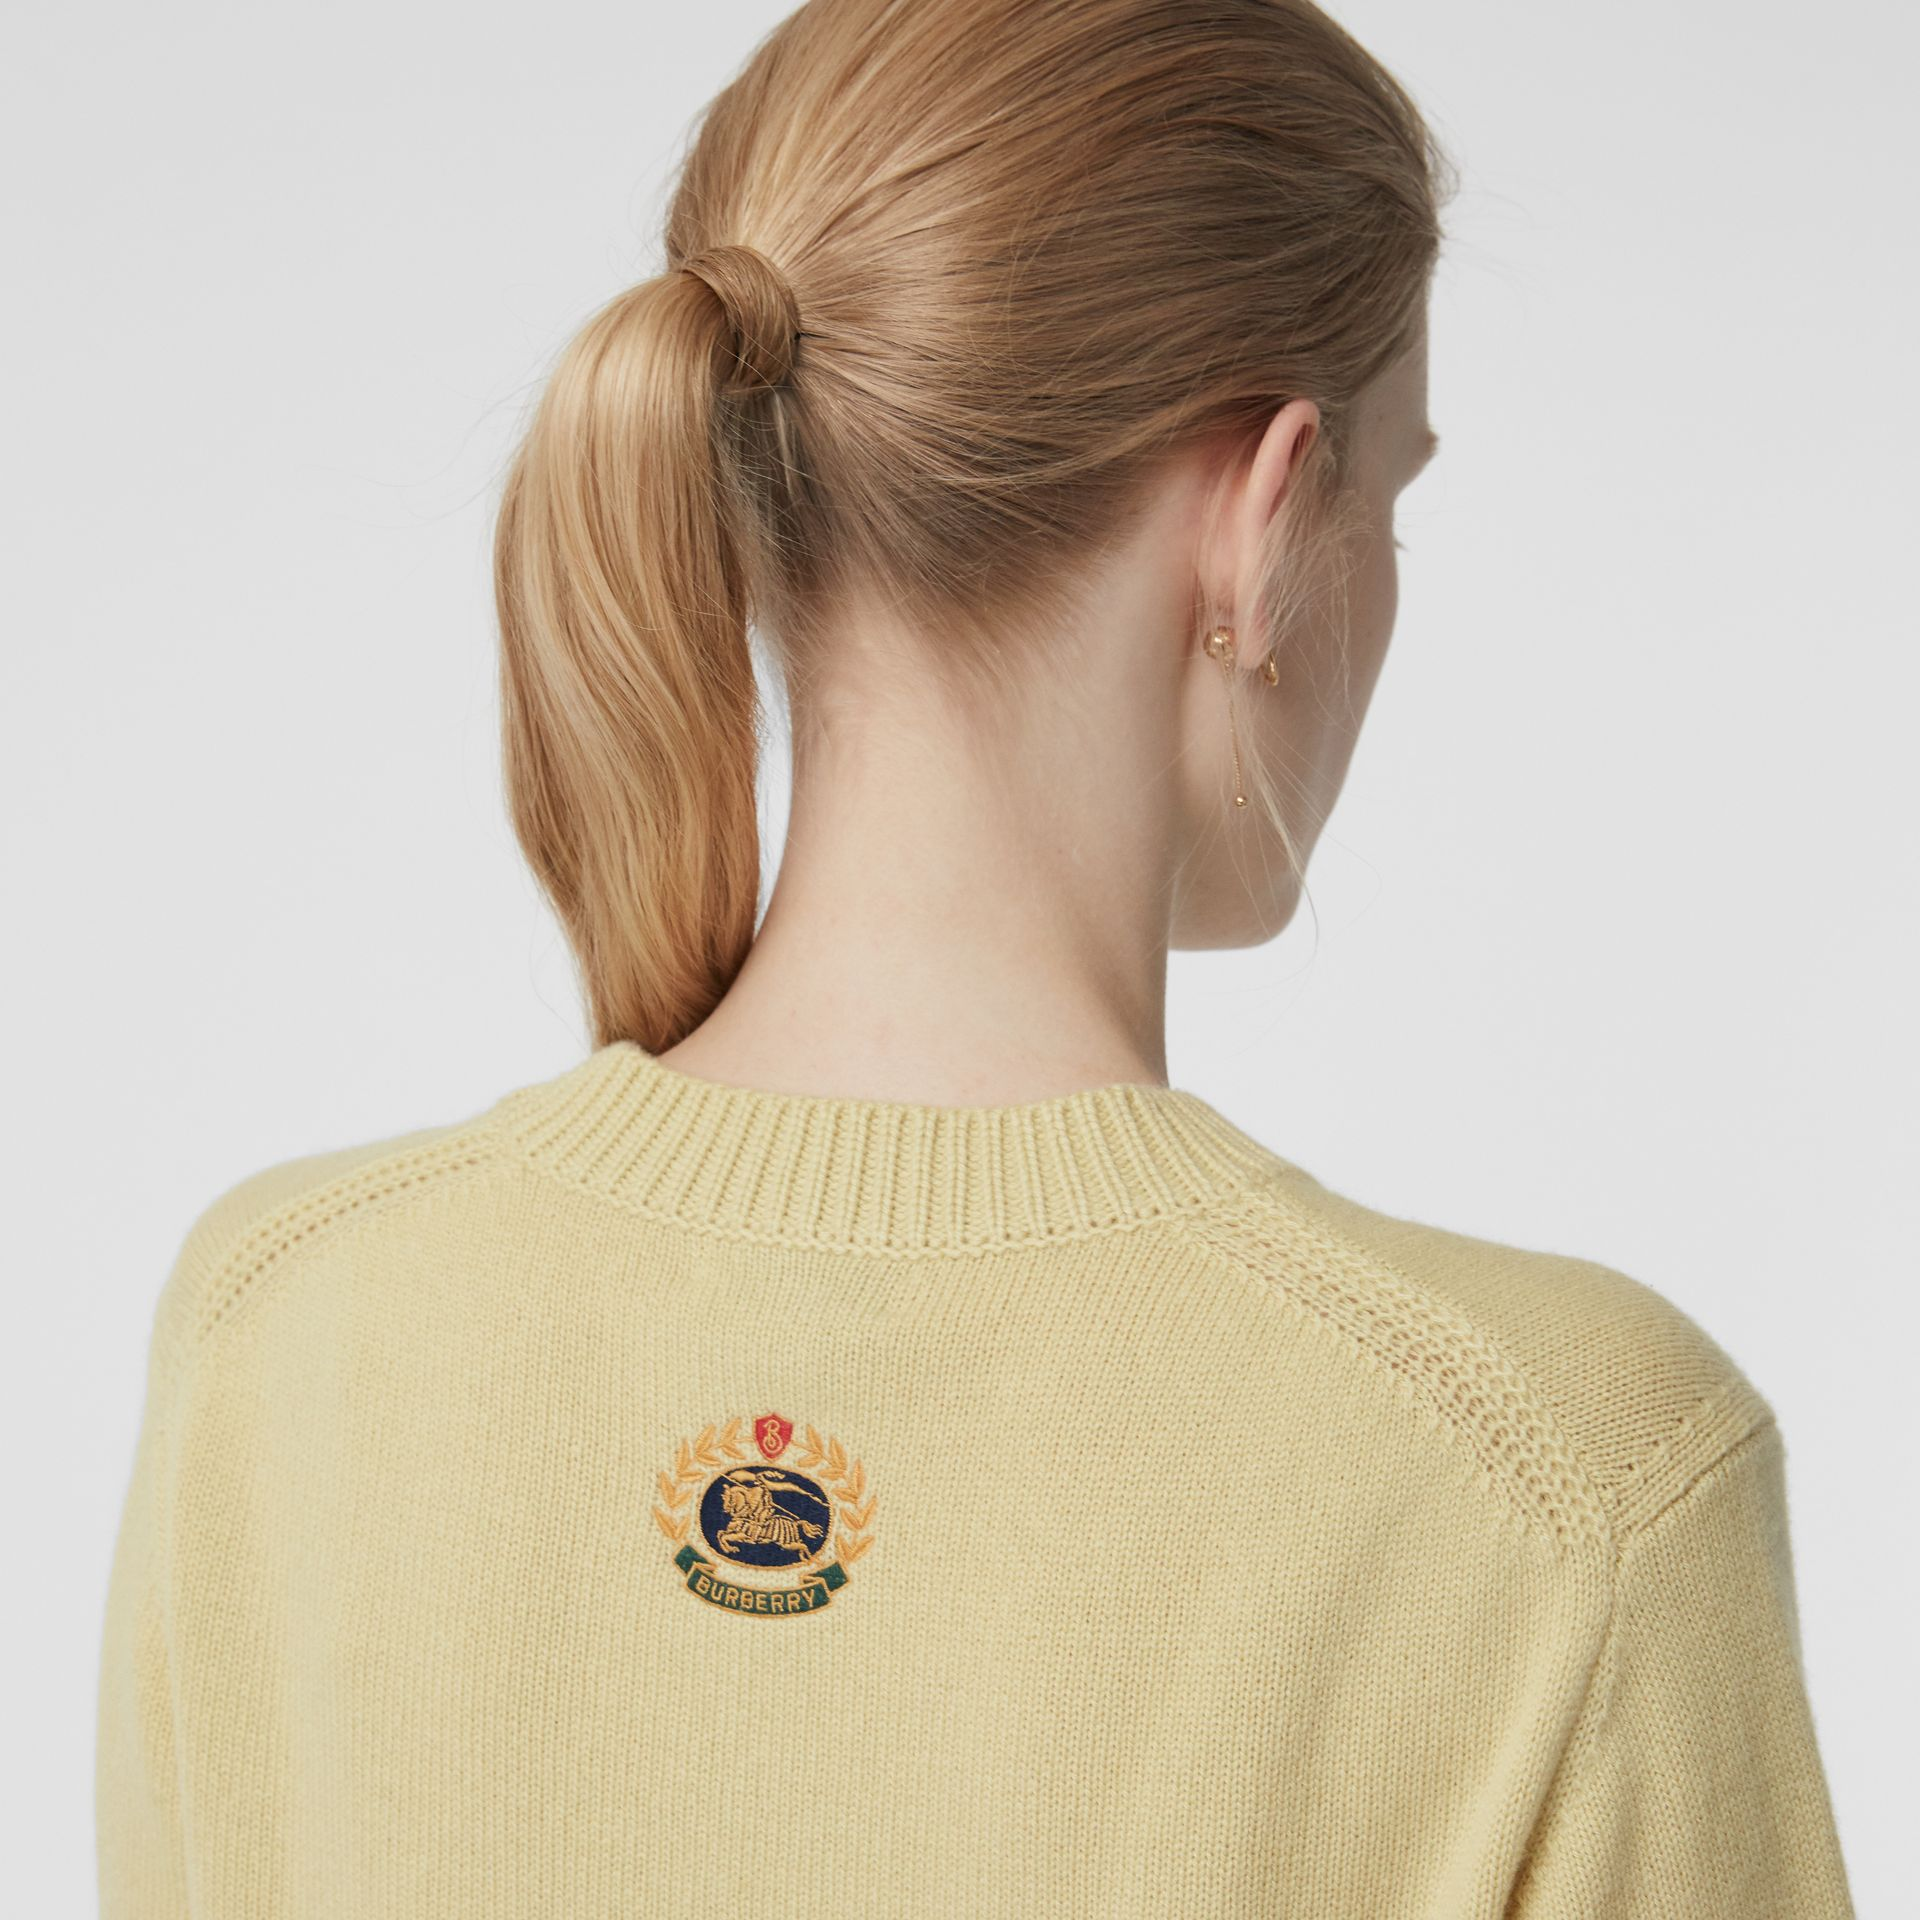 Archive Logo Appliqué Cashmere Sweater in Dusty Yellow - Women | Burberry Canada - gallery image 1